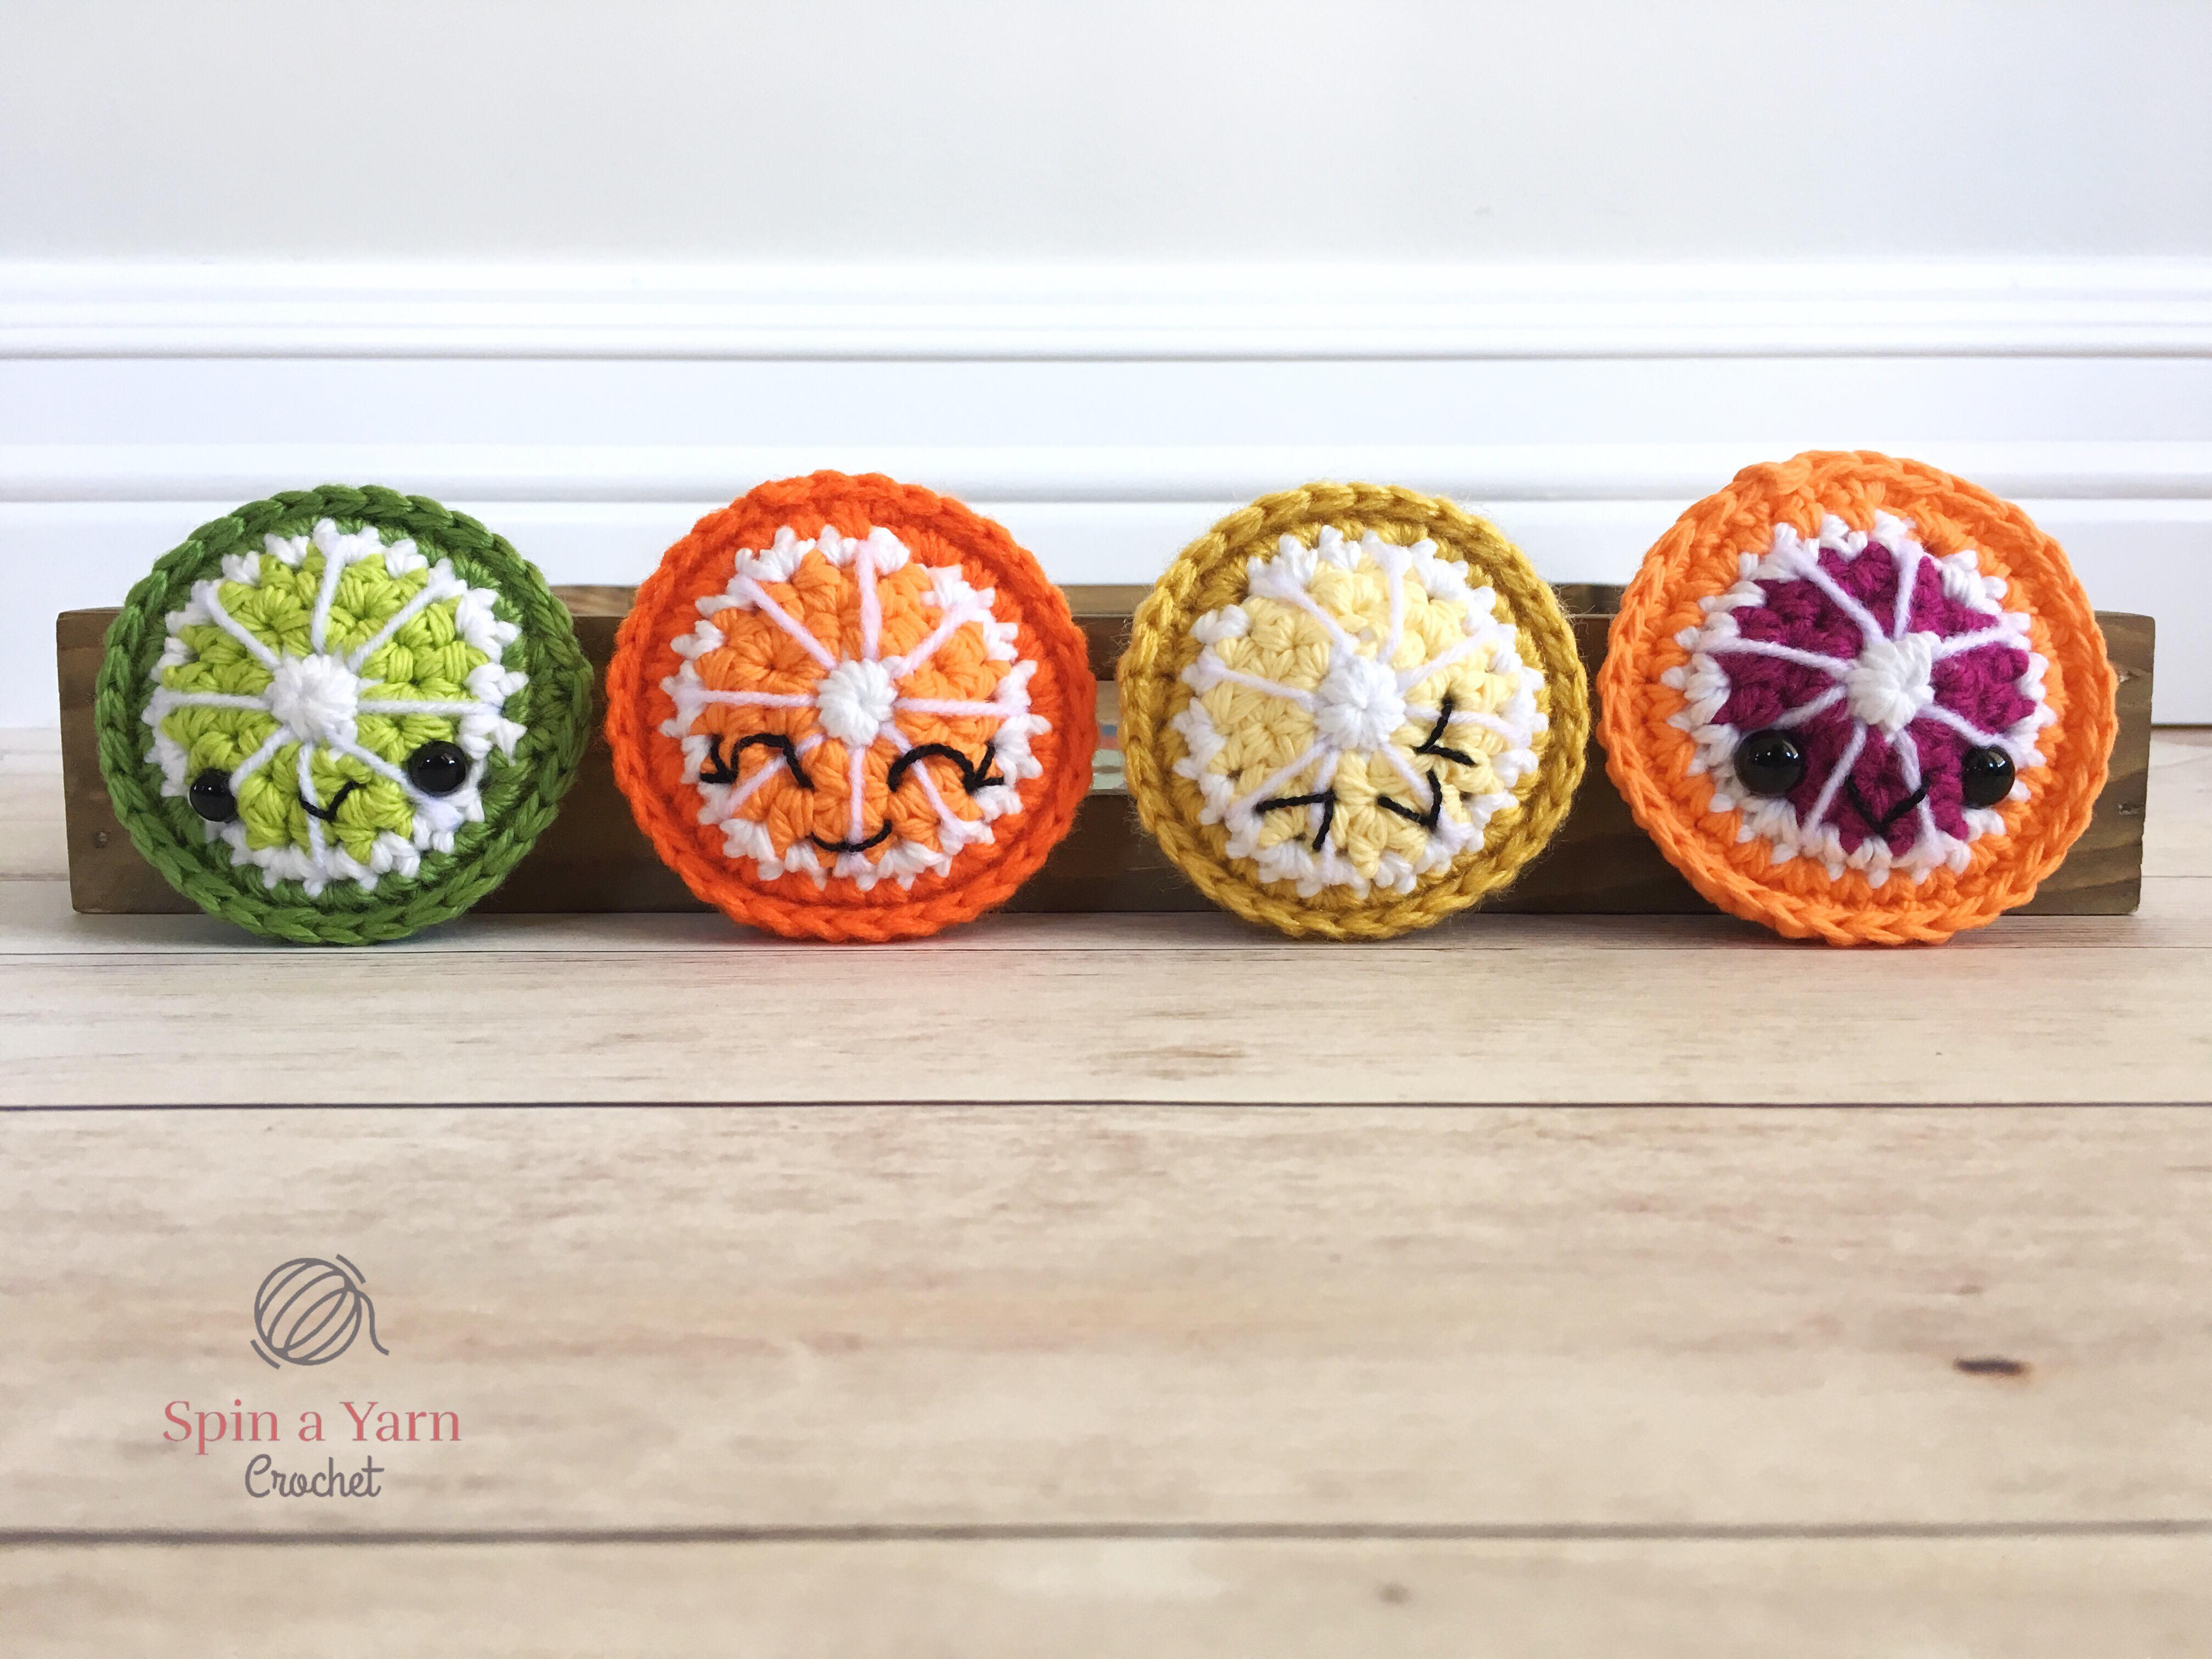 Admire These Adorable Fruits And Vegetables [Free Crochet Patterns For All  And The Basket] - Knit And Crochet Daily | 3024x4032